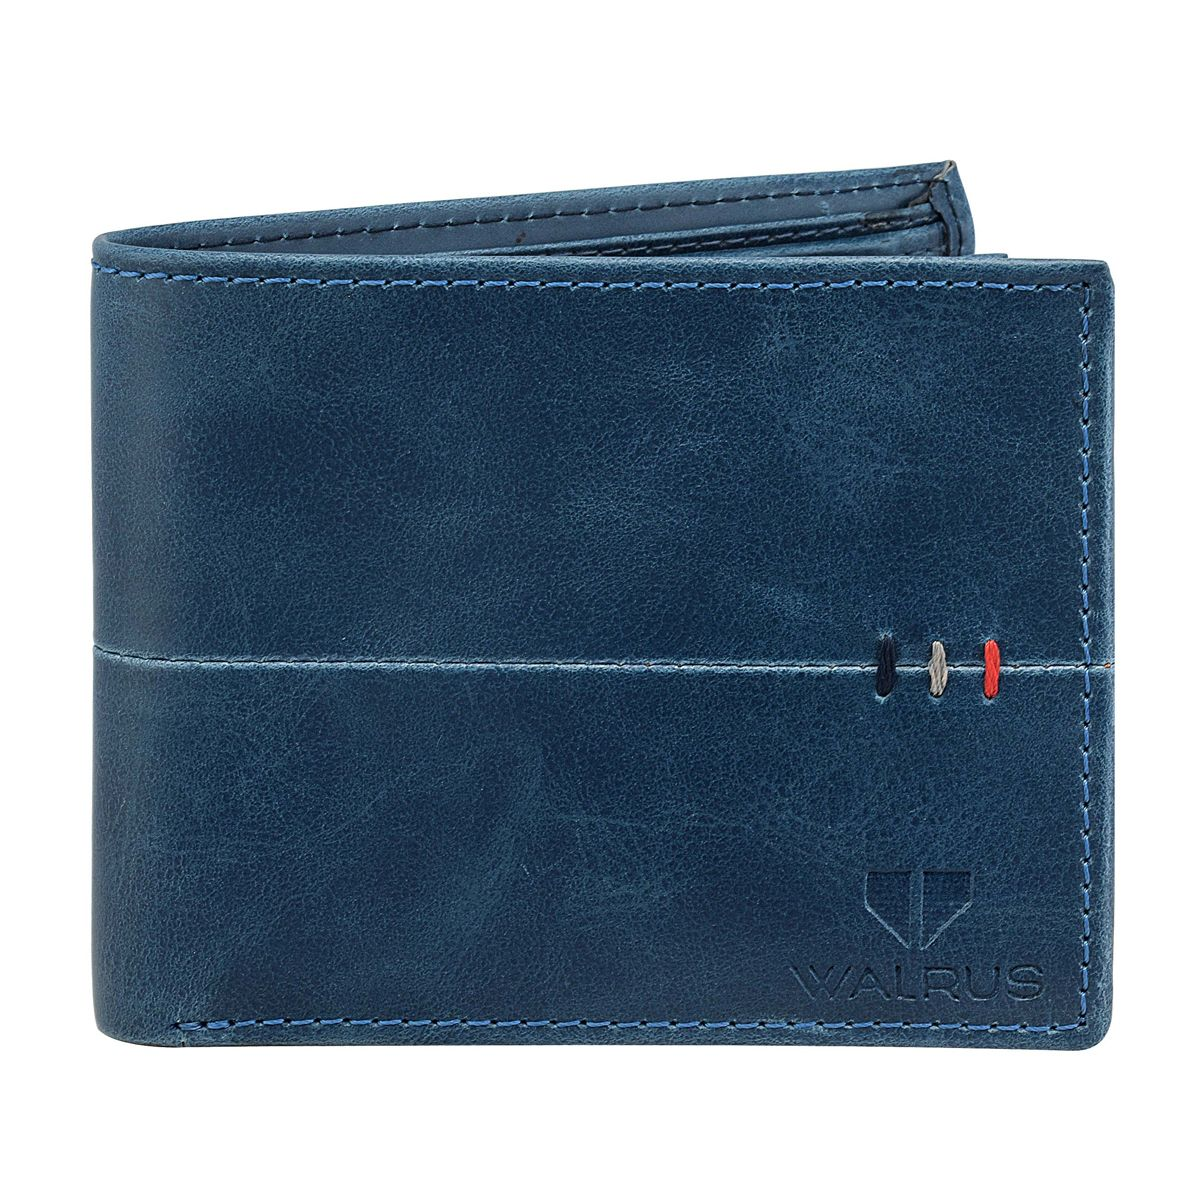 Walrus Daniel Blue Color Men Leather Wallet- WW-DNL-03